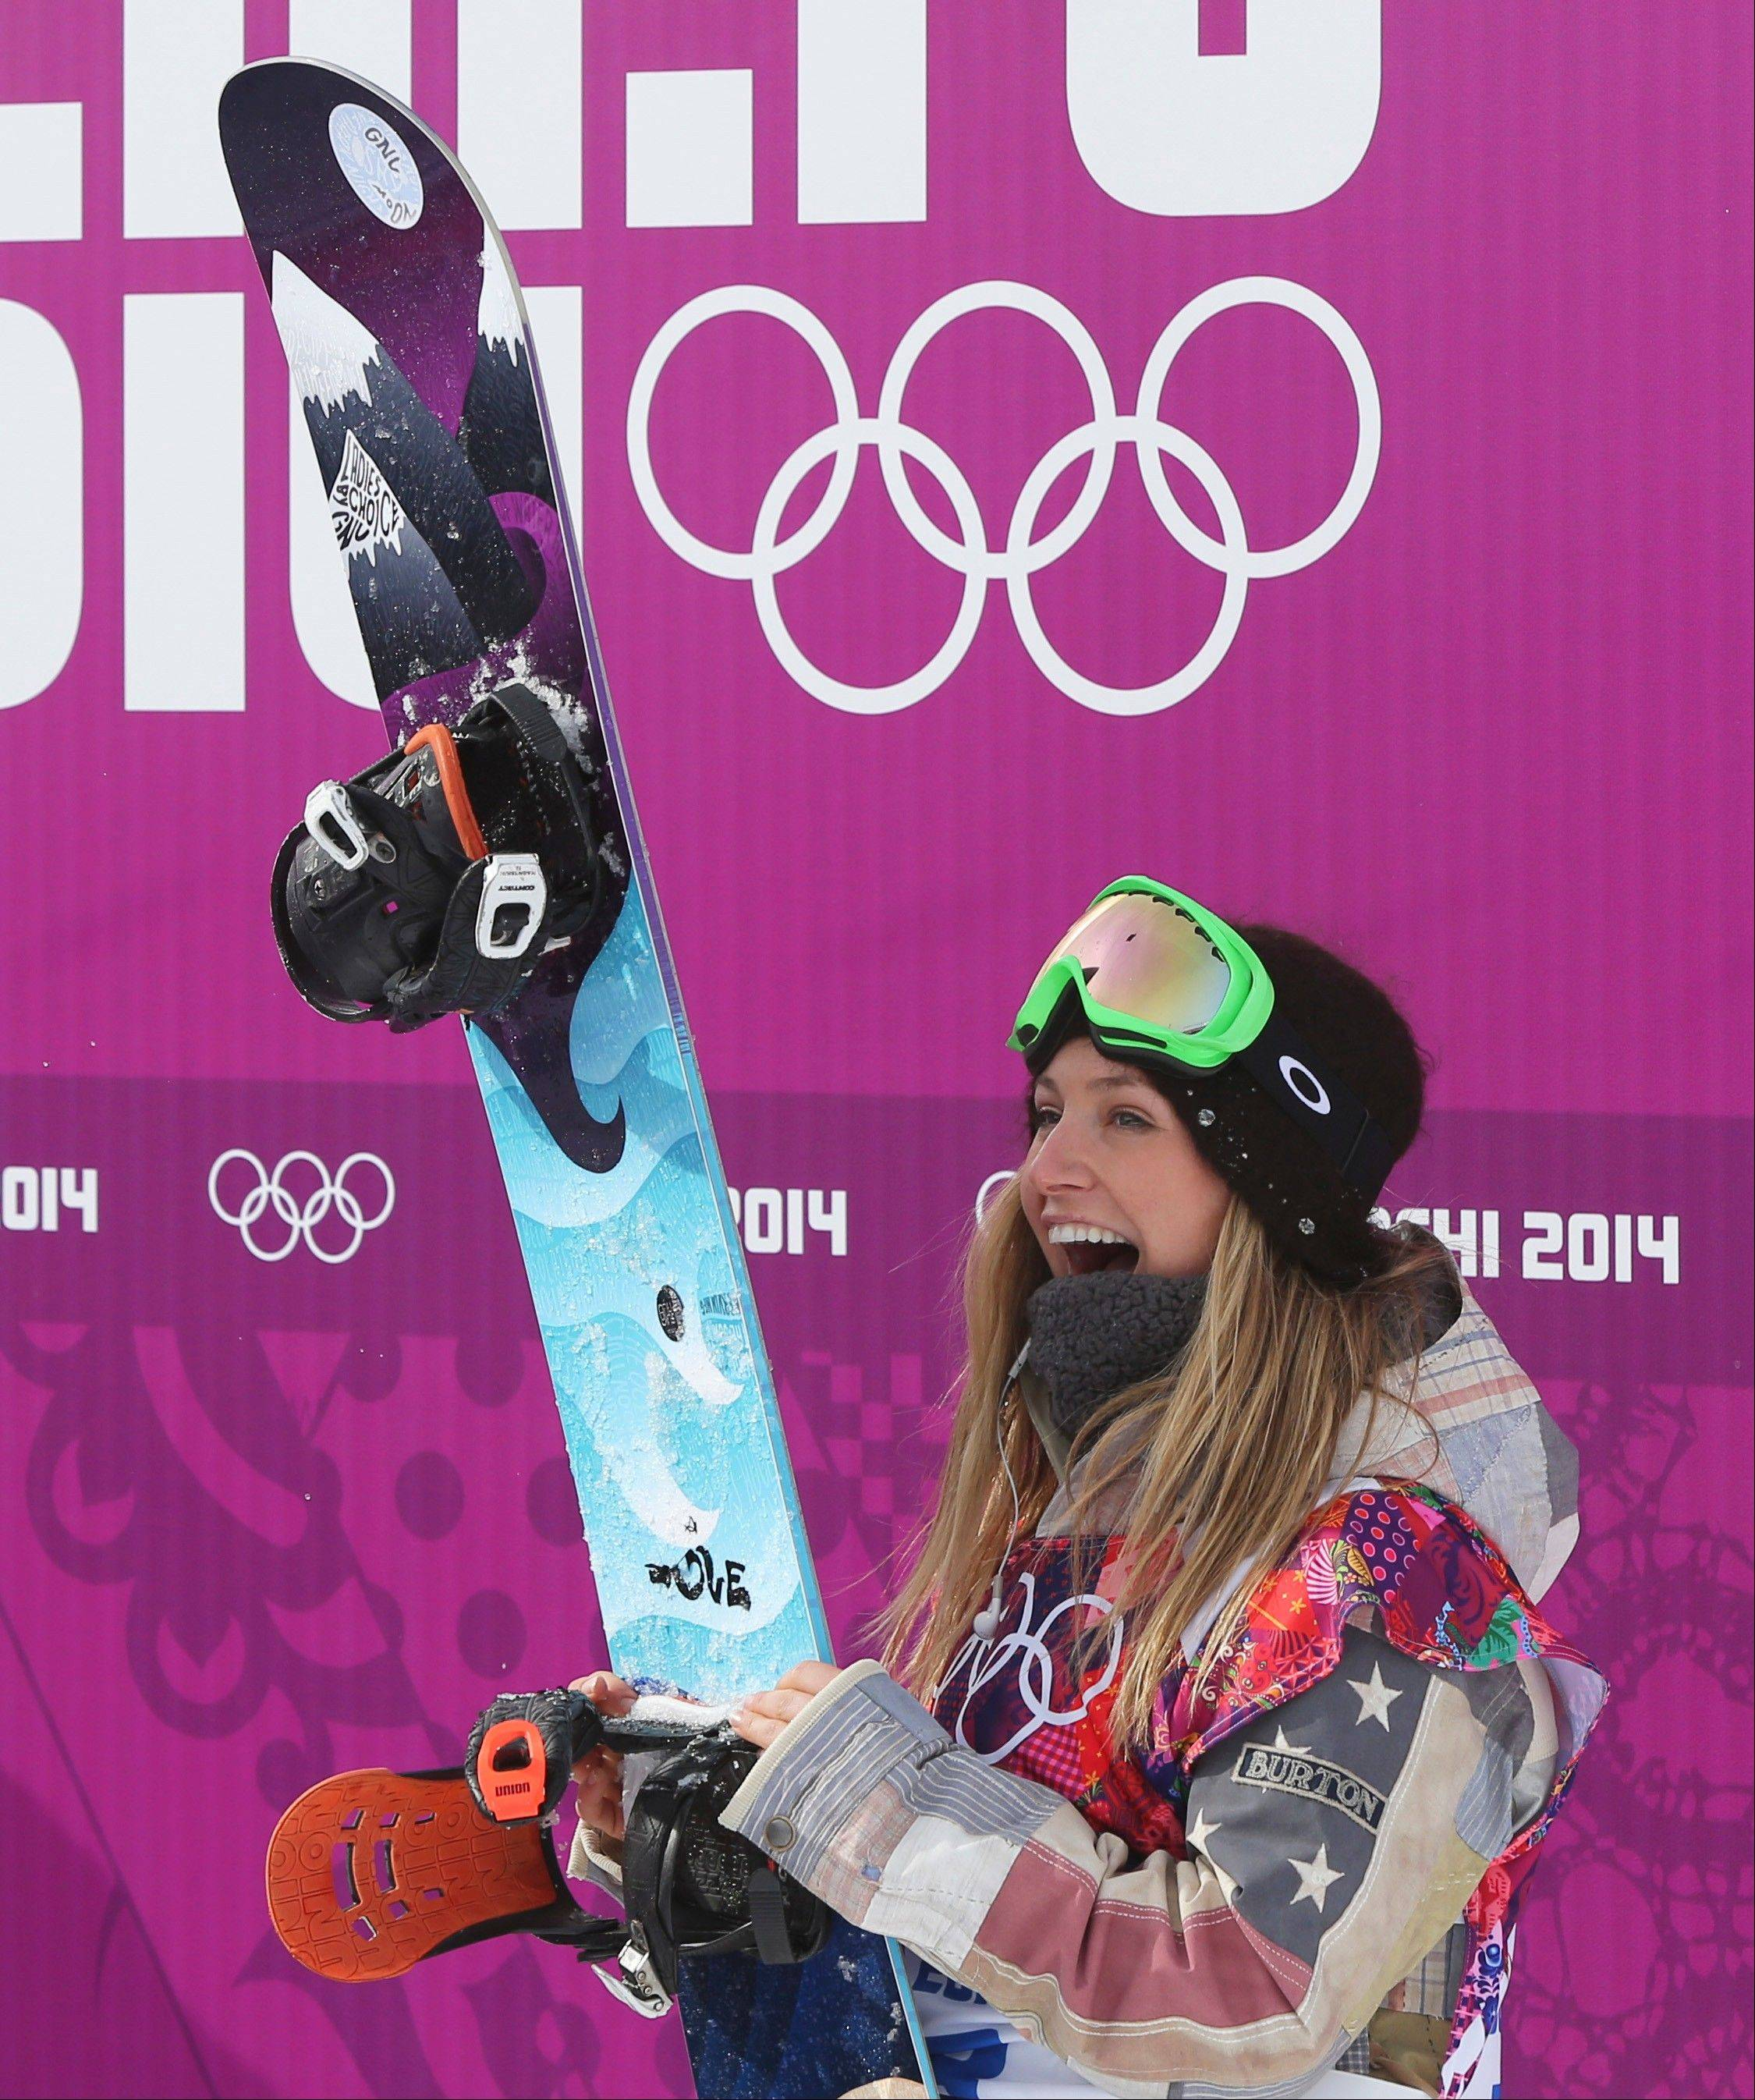 Jamie Anderson of the United States celebrates after winning the women's snowboard slopestyle final at the 2014 Winter Olympics, Sunday, Feb. 9, 2014, in Krasnaya Polyana, Russia.